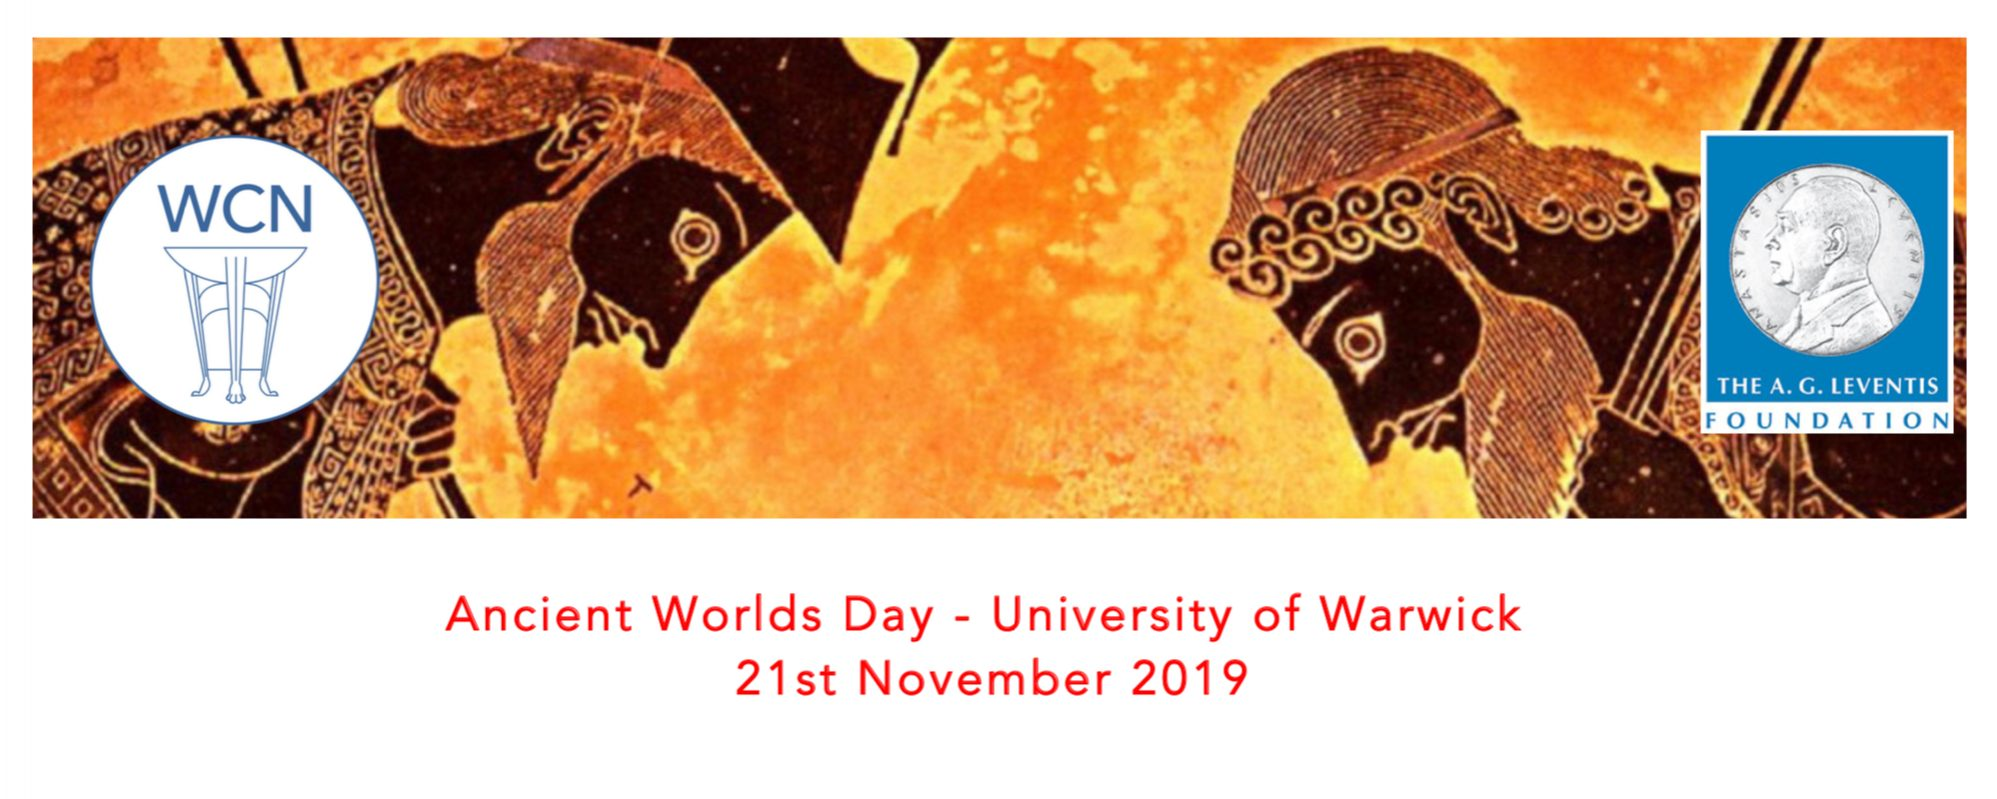 Ancient Worlds Day – University of Warwick